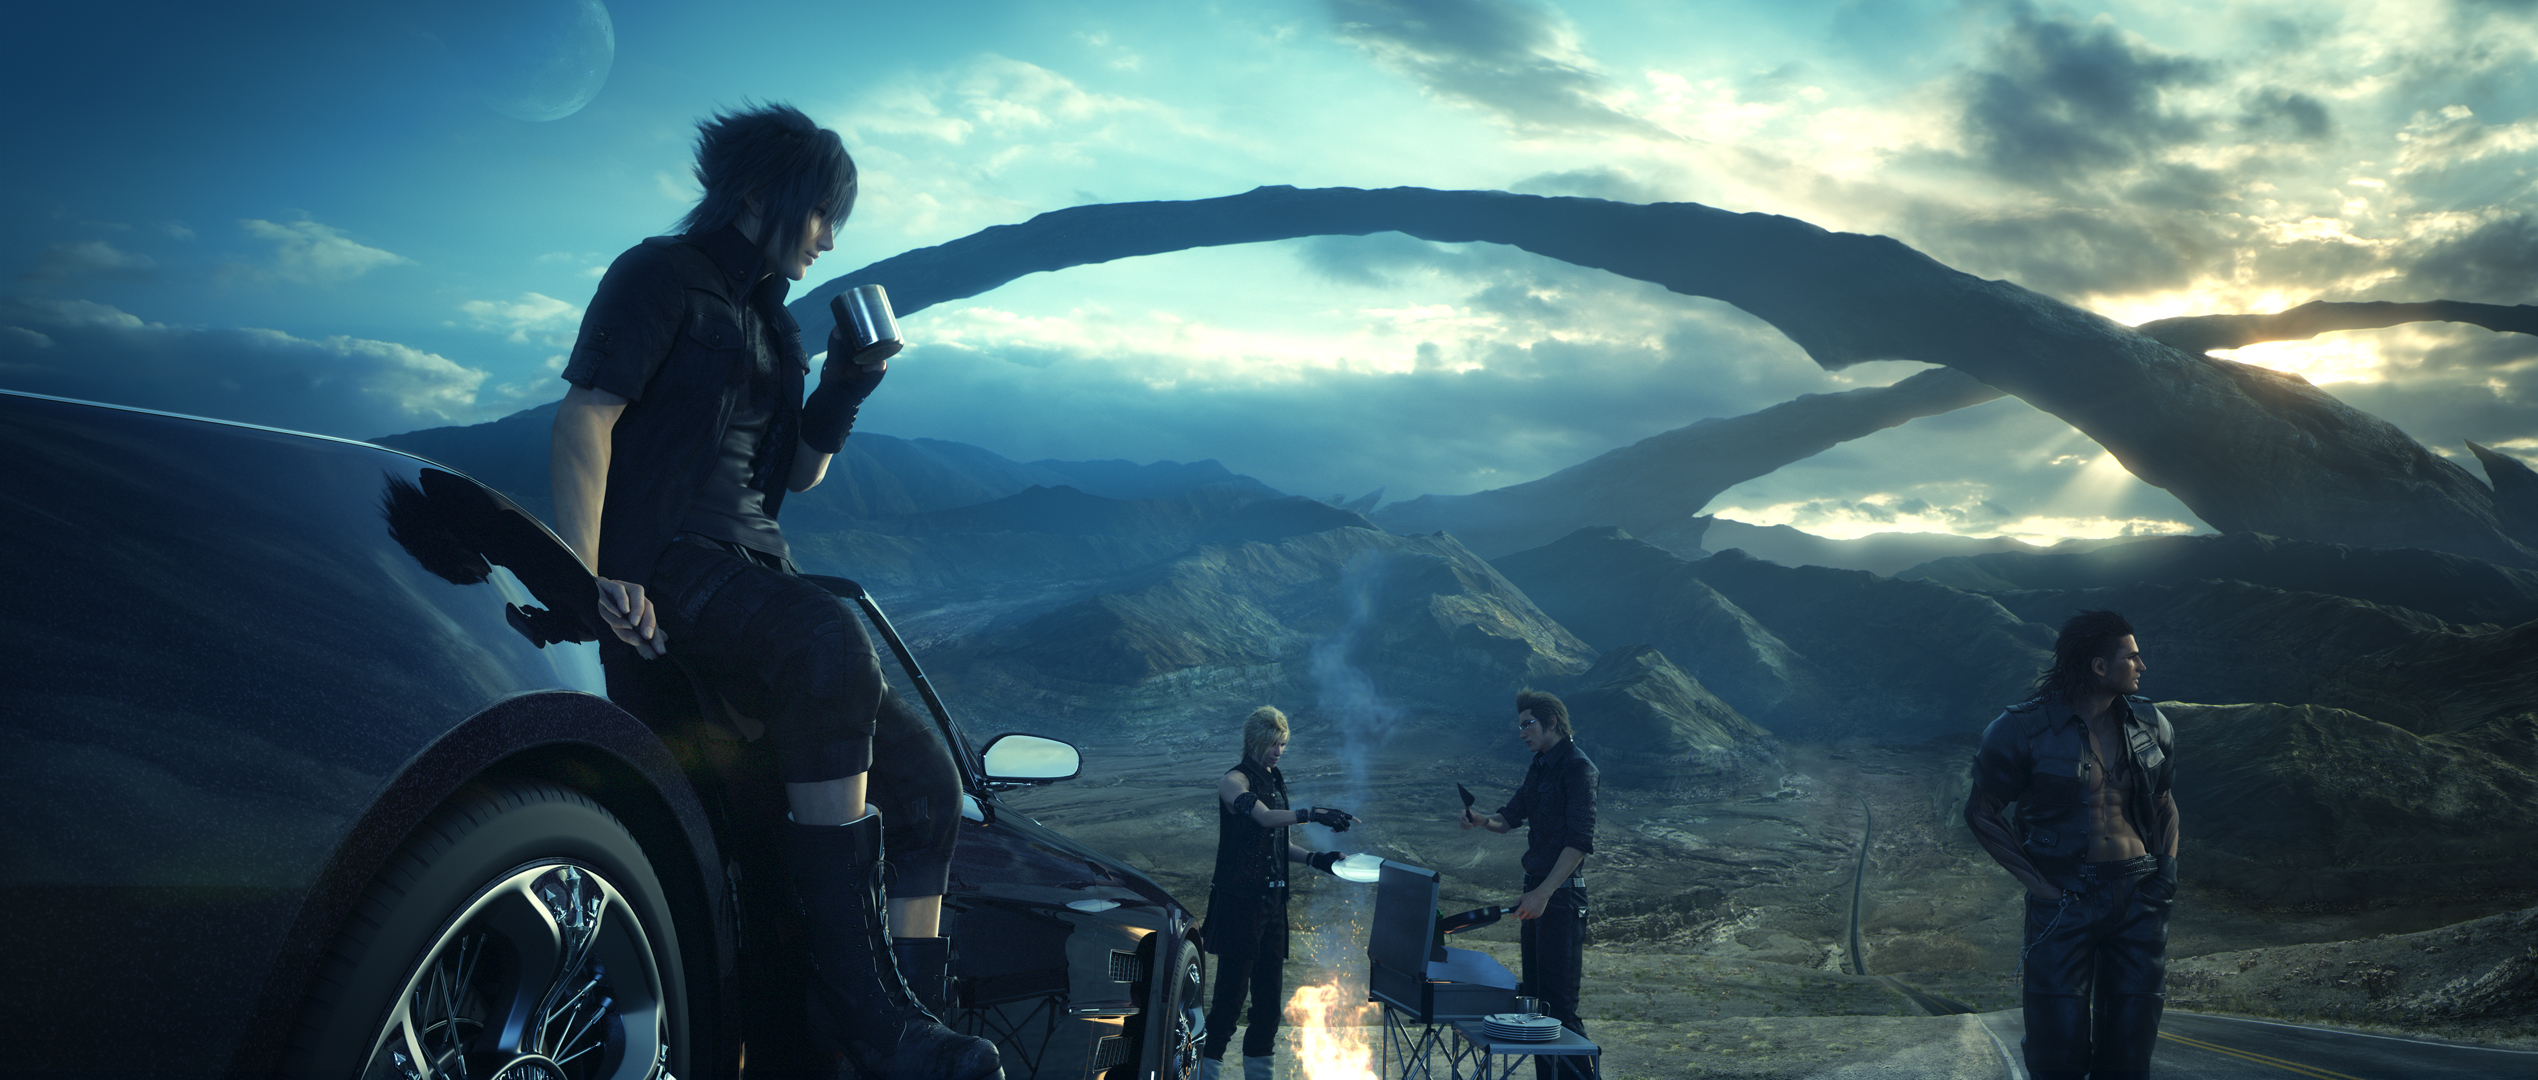 Final-Fantasy-XV-Picture-of-the-Day-http-mmorpgwall-com-final-fantasy-xv-picture-of-the-day-wallpaper-wp3605562-1